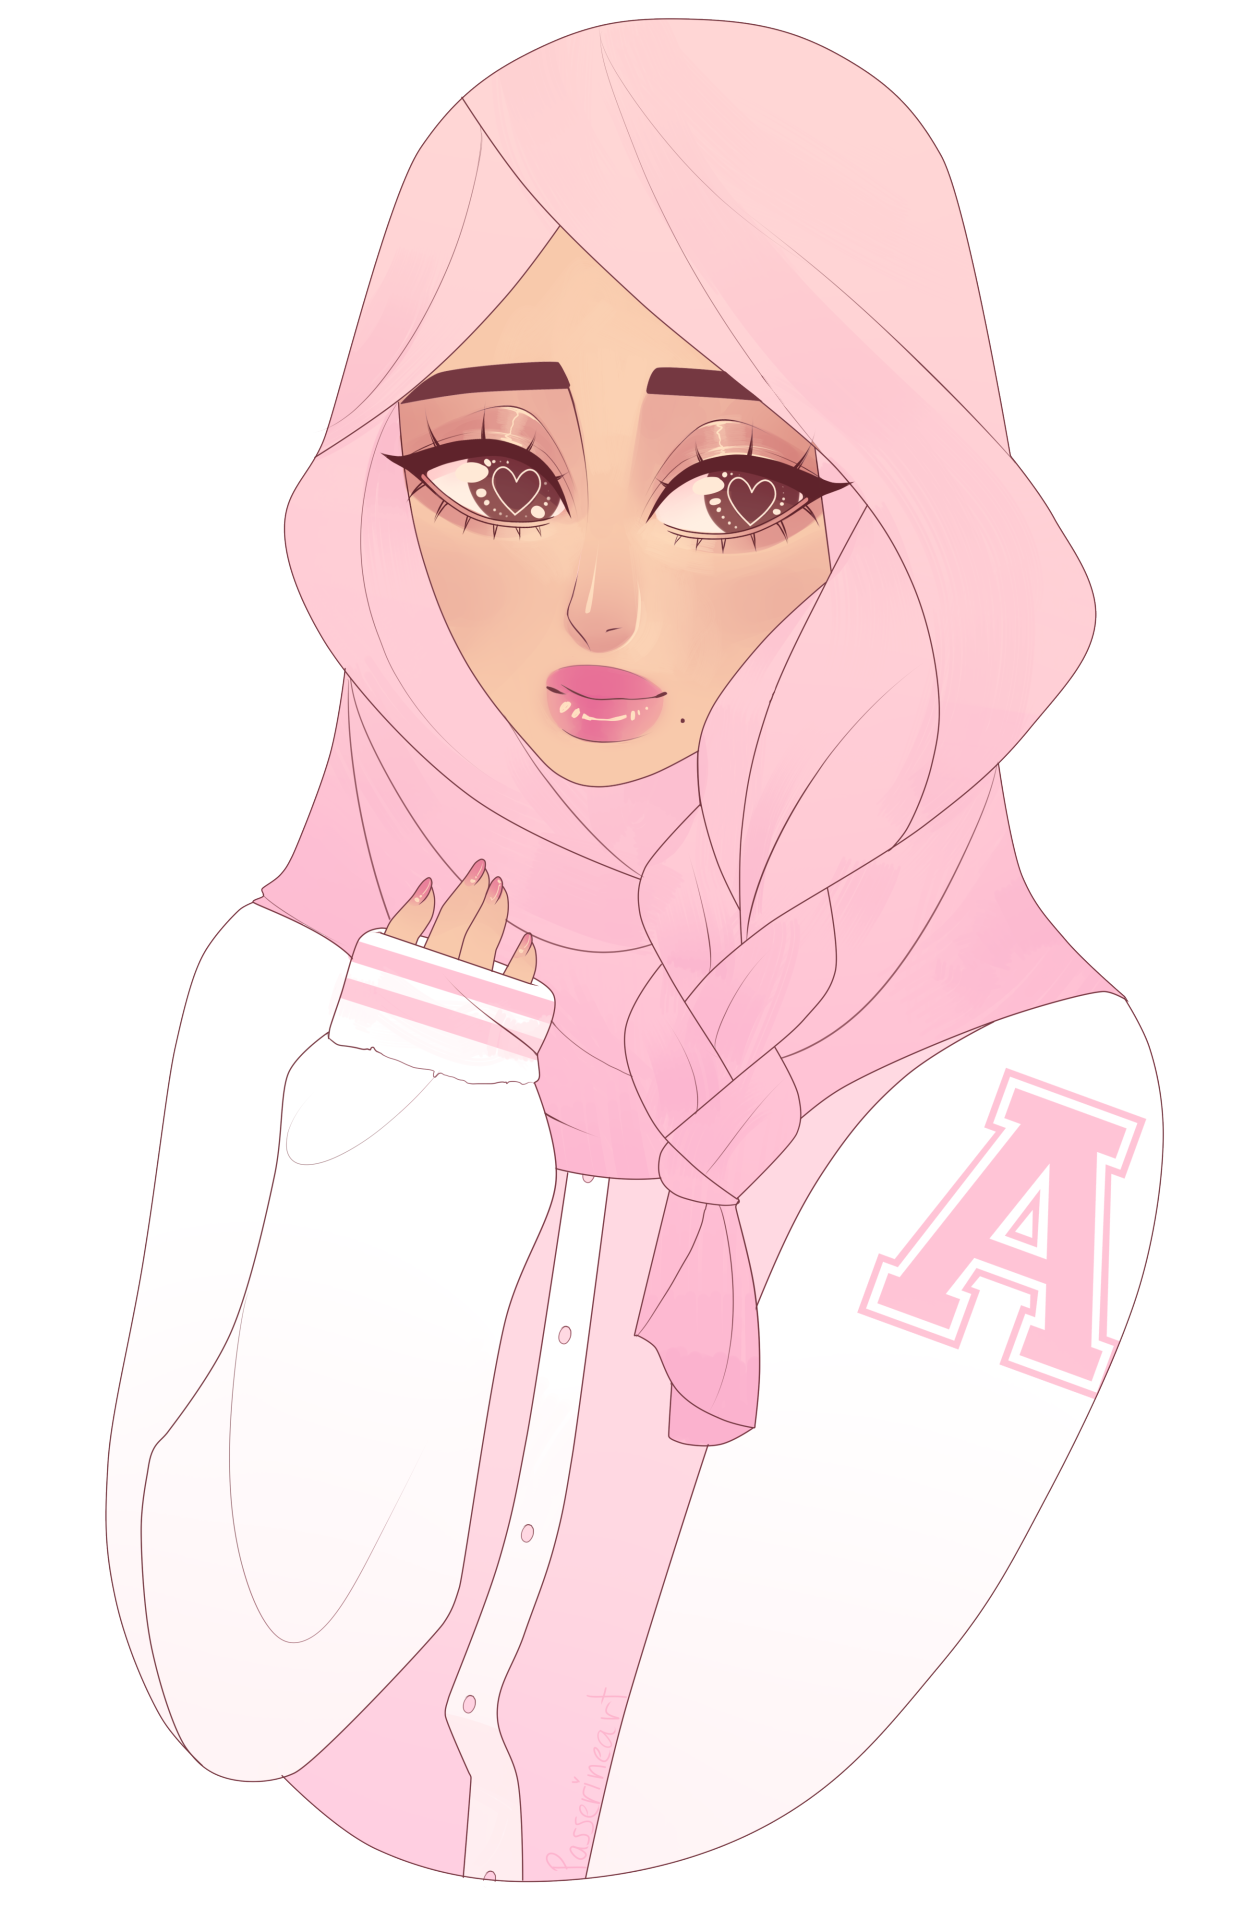 portraits drawing couple